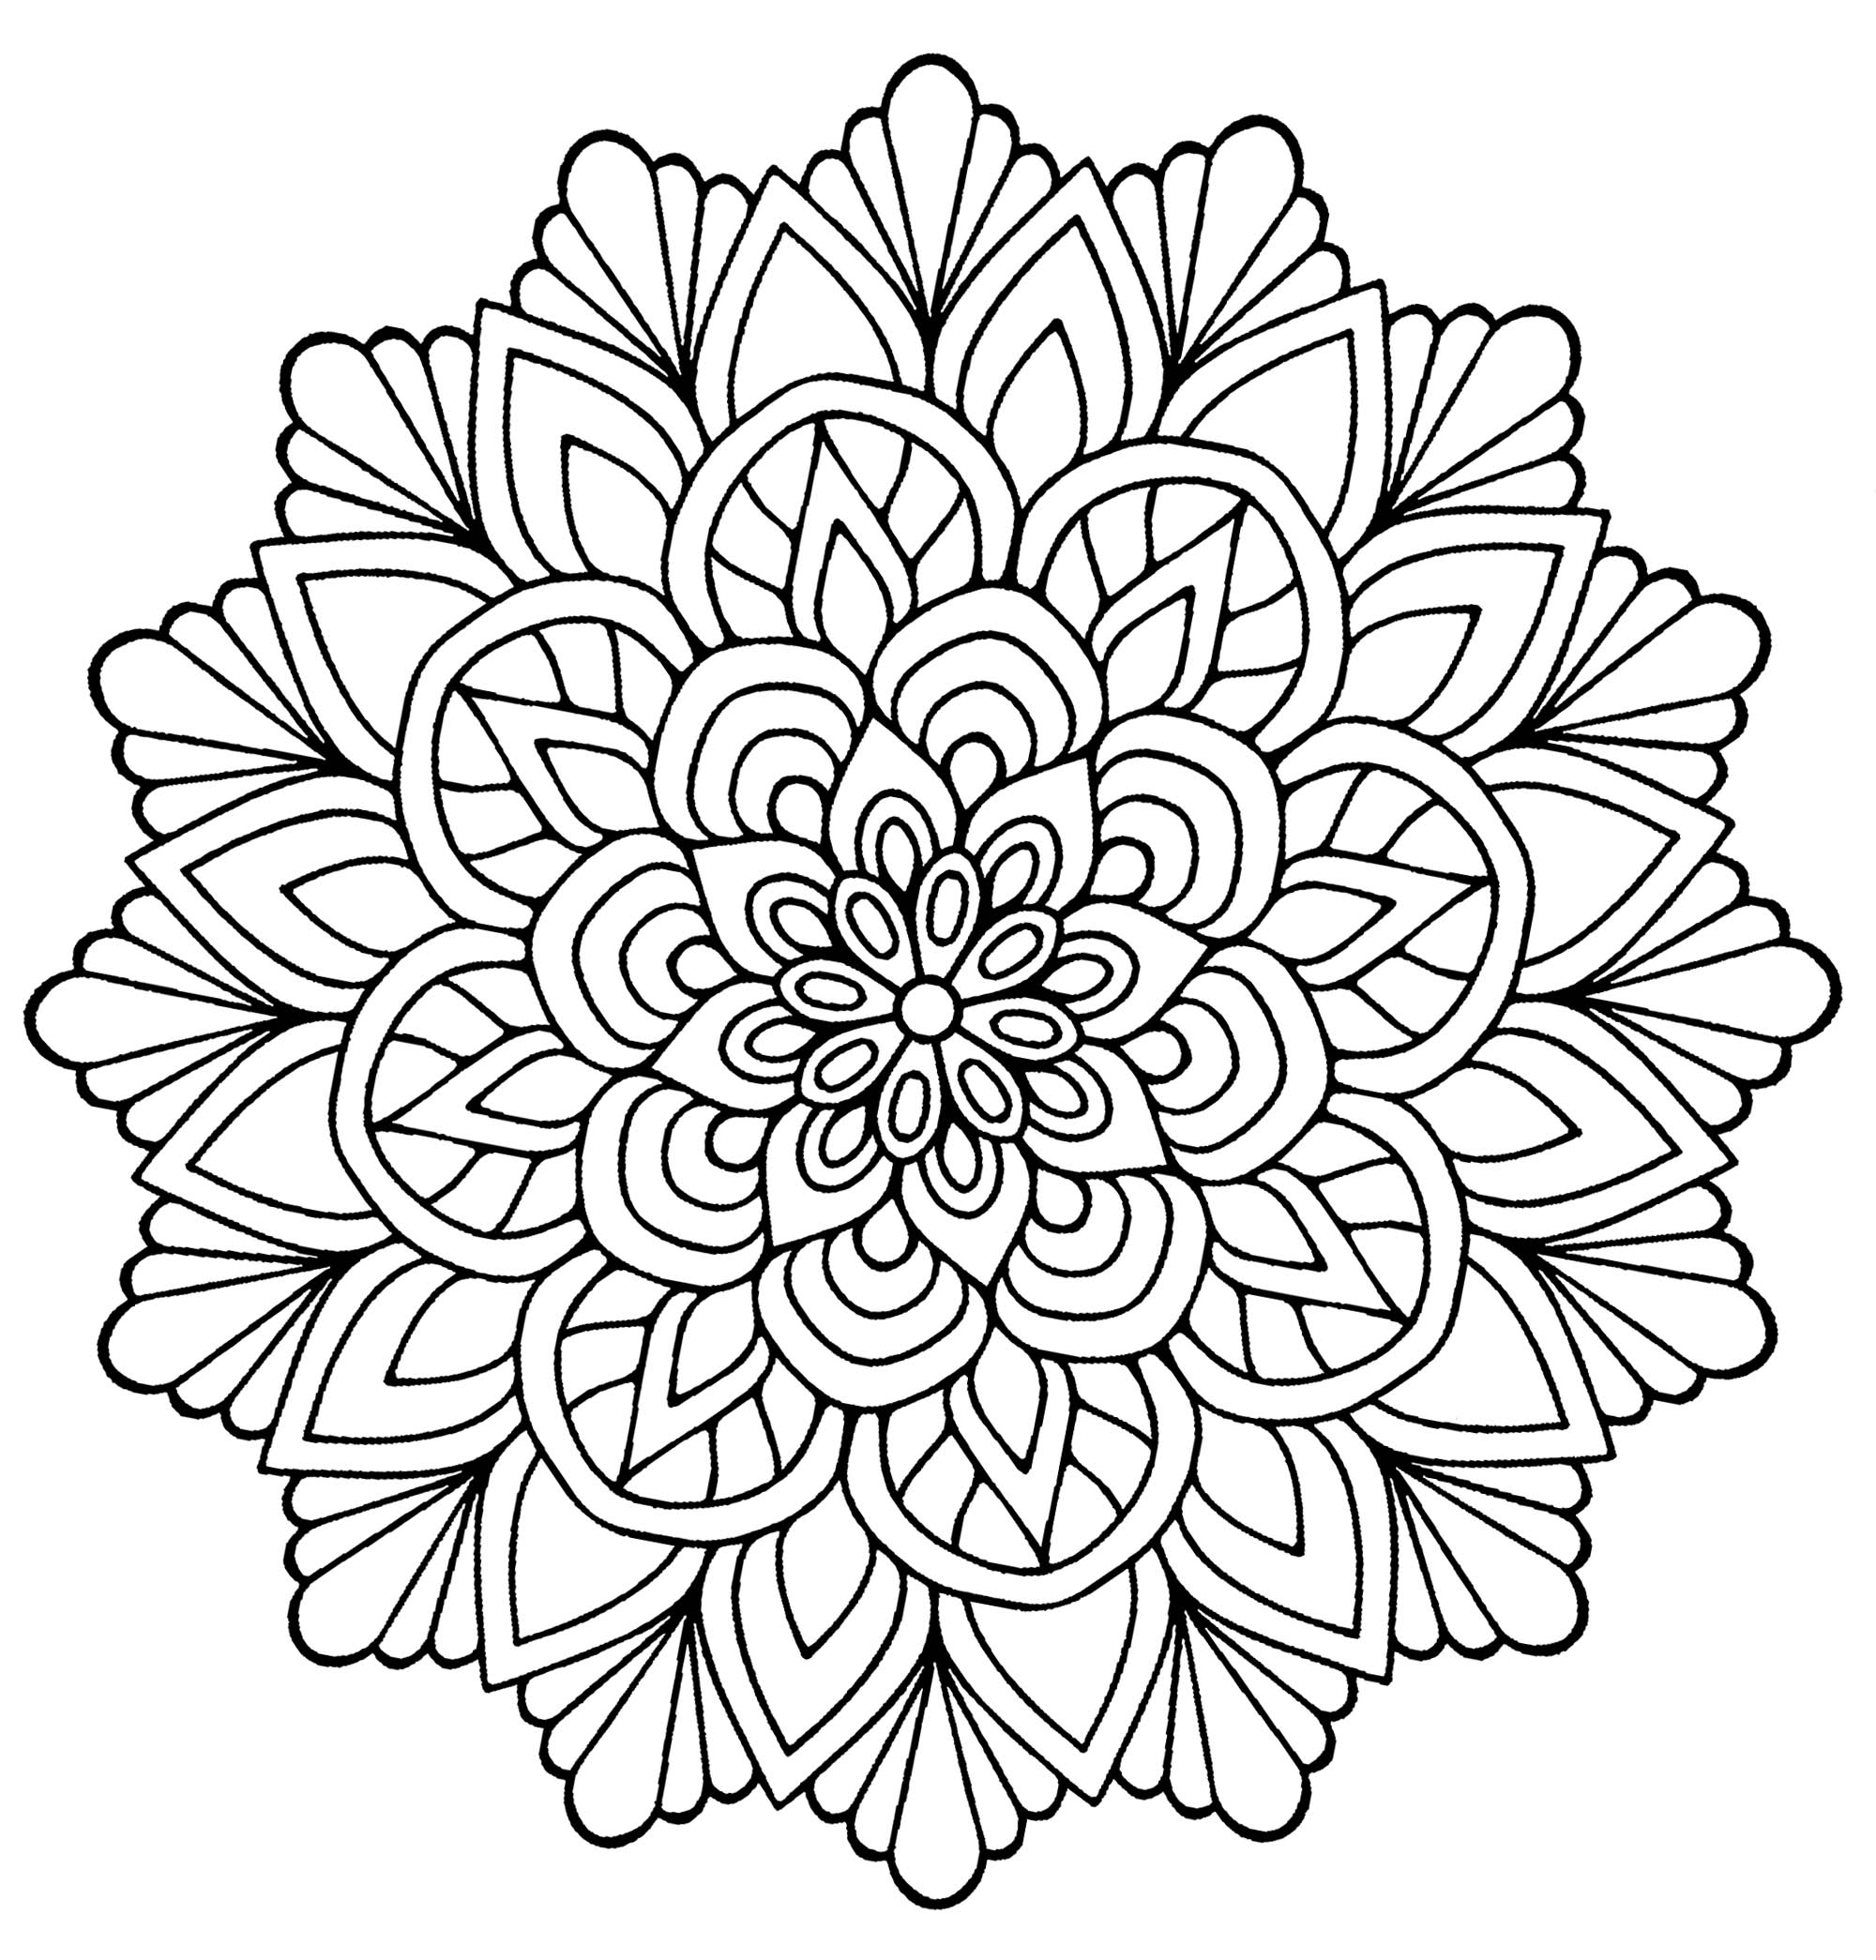 mandala fleur avec feuilles coloriage mandalas coloriages pour enfants. Black Bedroom Furniture Sets. Home Design Ideas